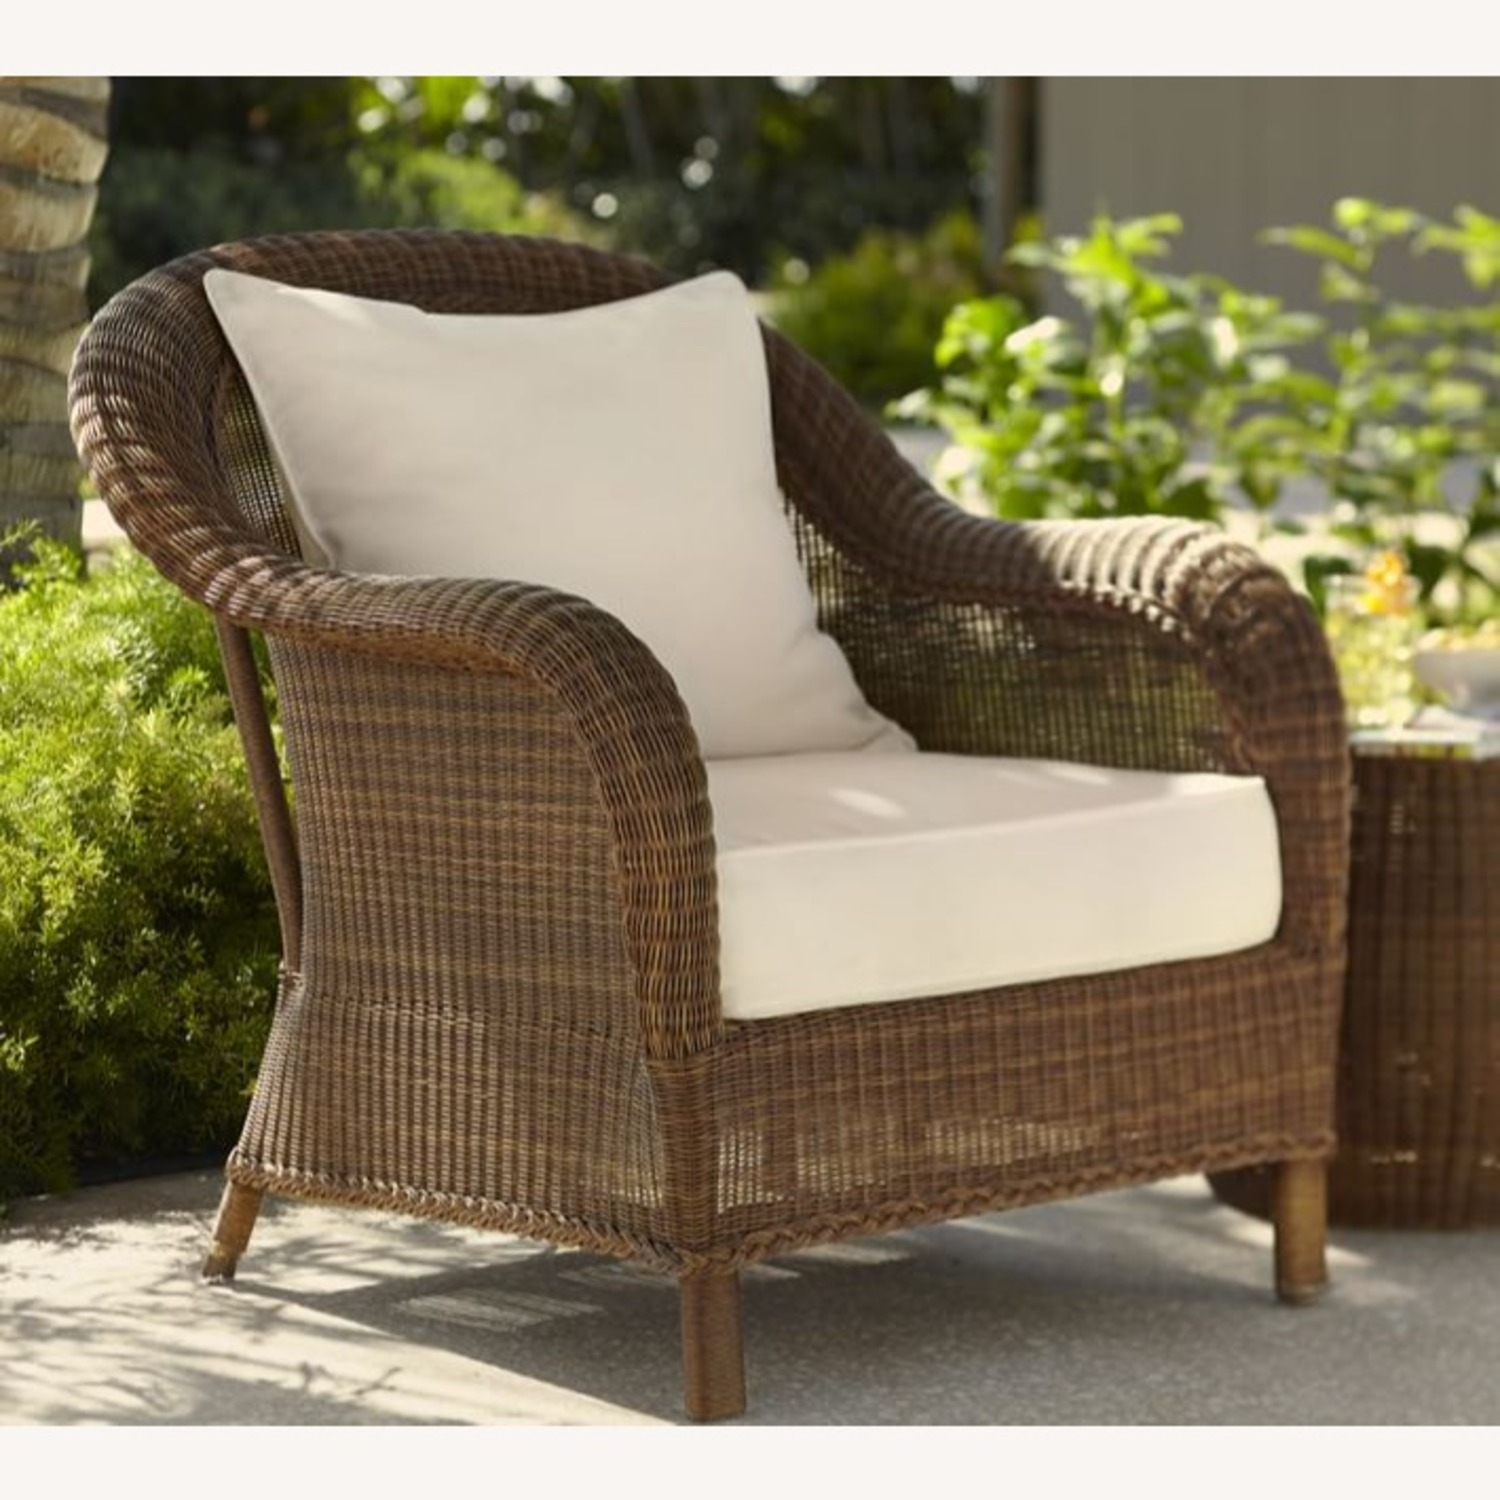 Pottery Barn Palmetto All-Weather Wicker Chair - image-3